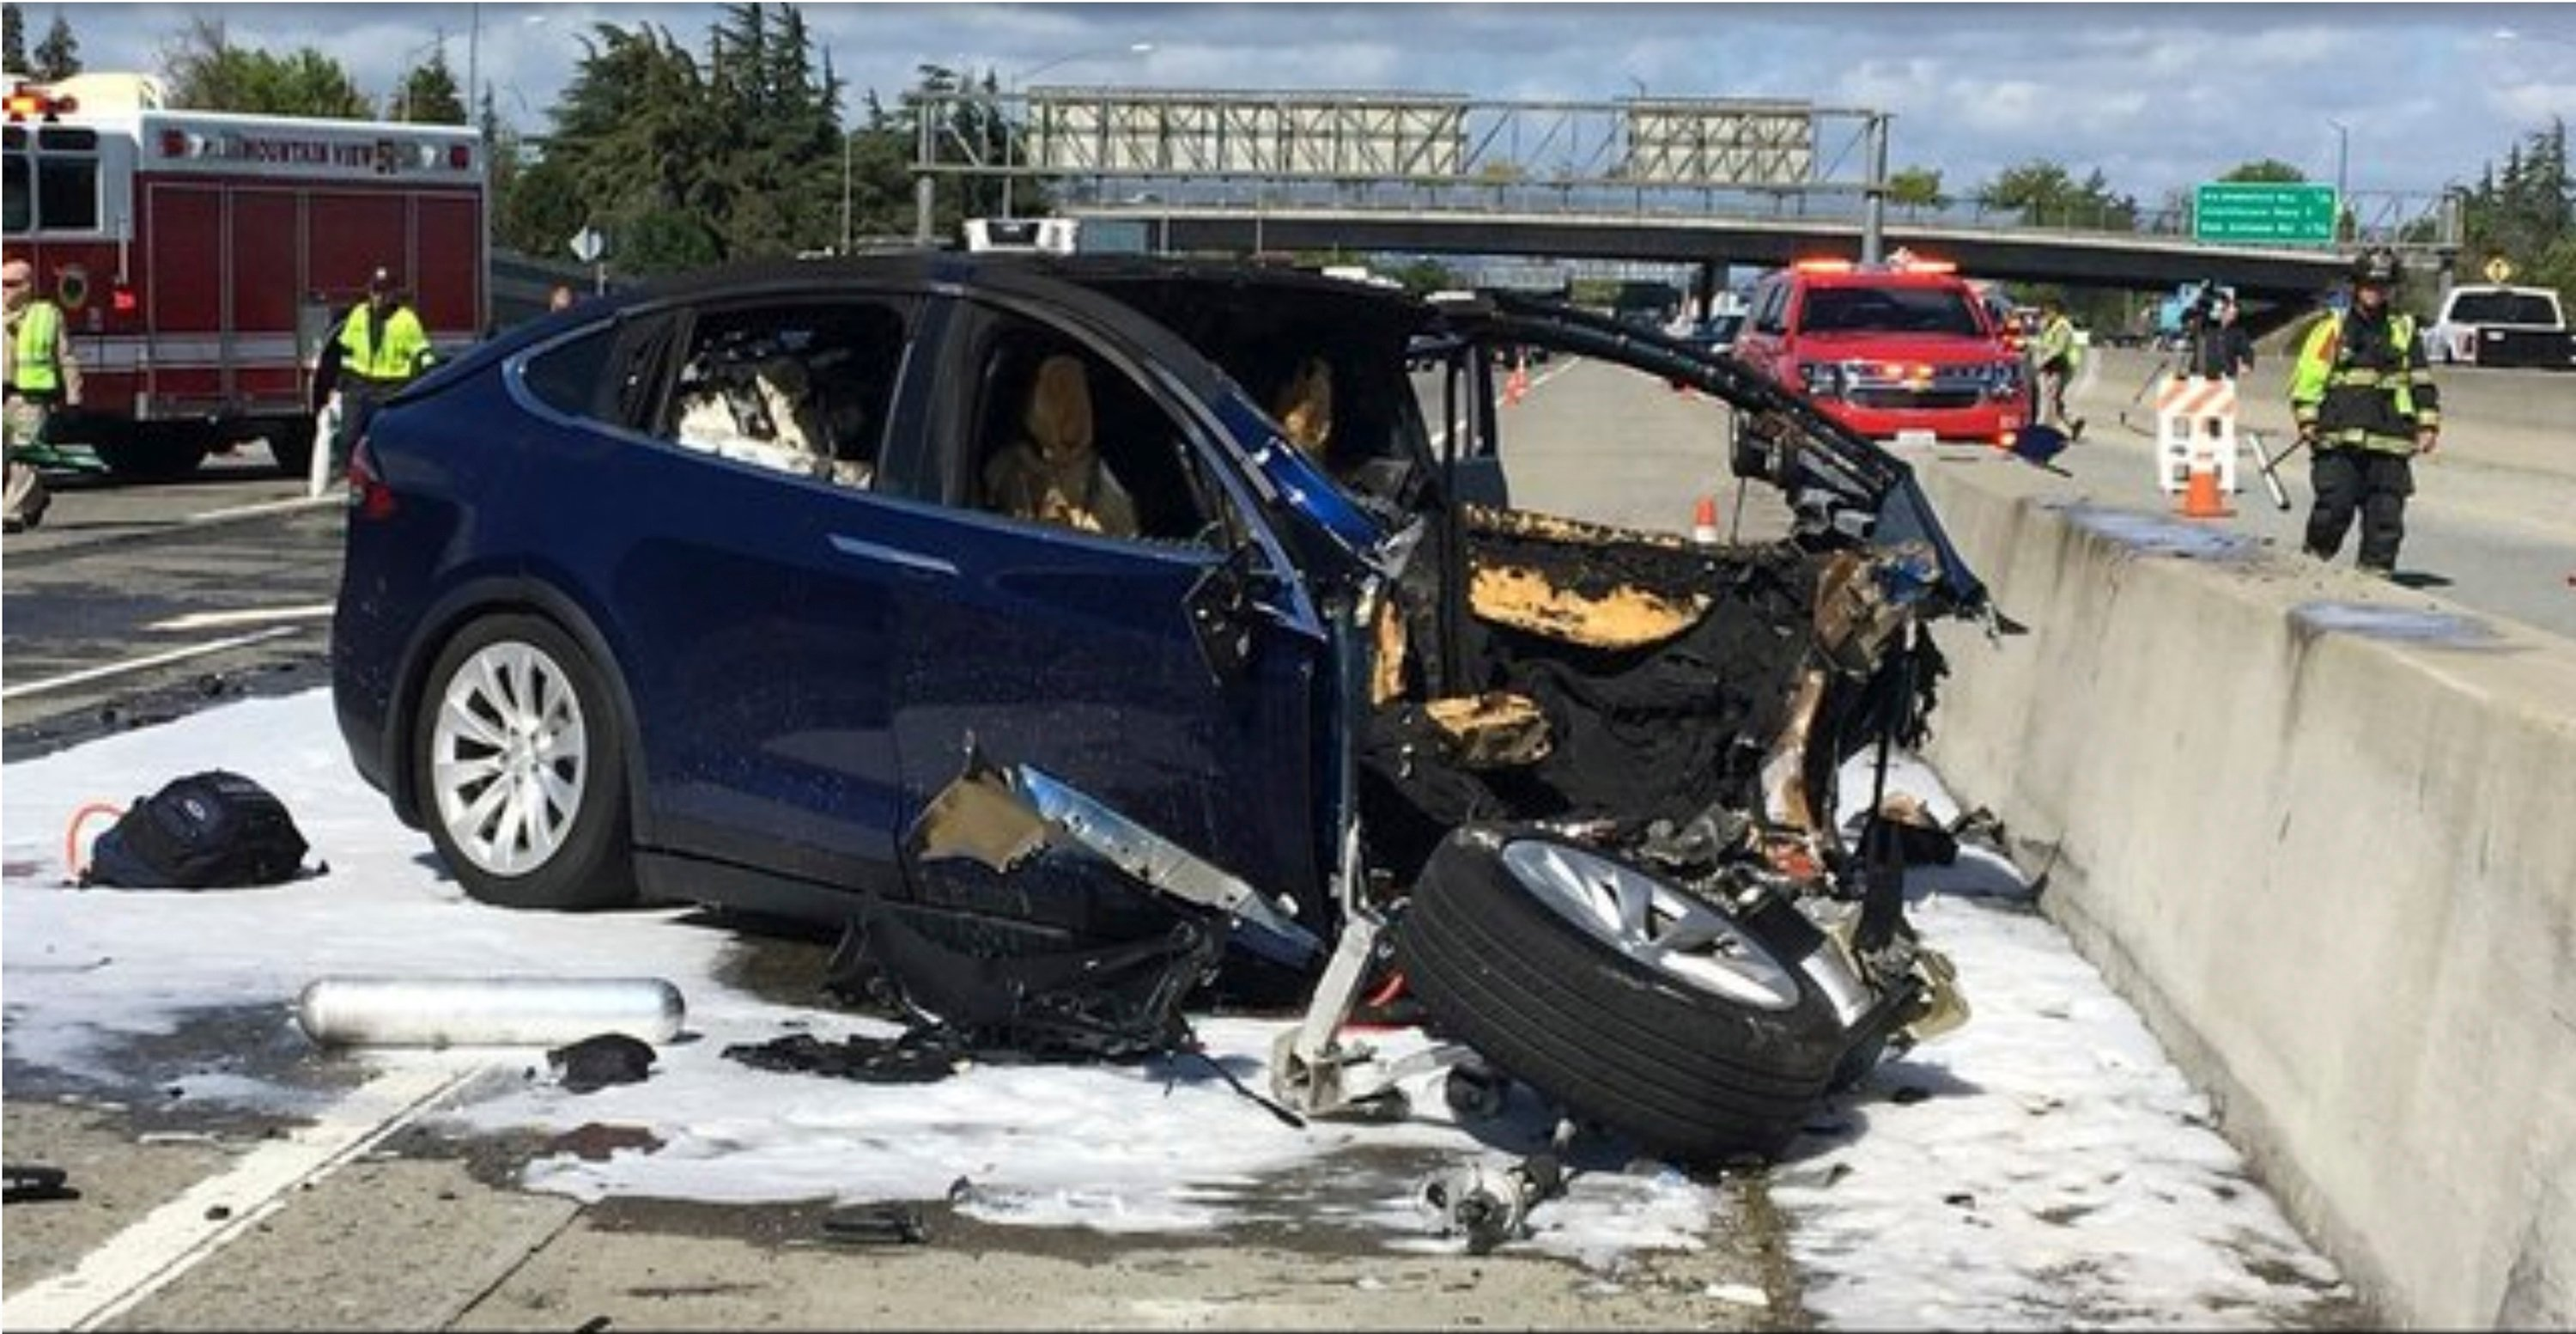 Tesla says vehicle in deadly crash was on Autopilot